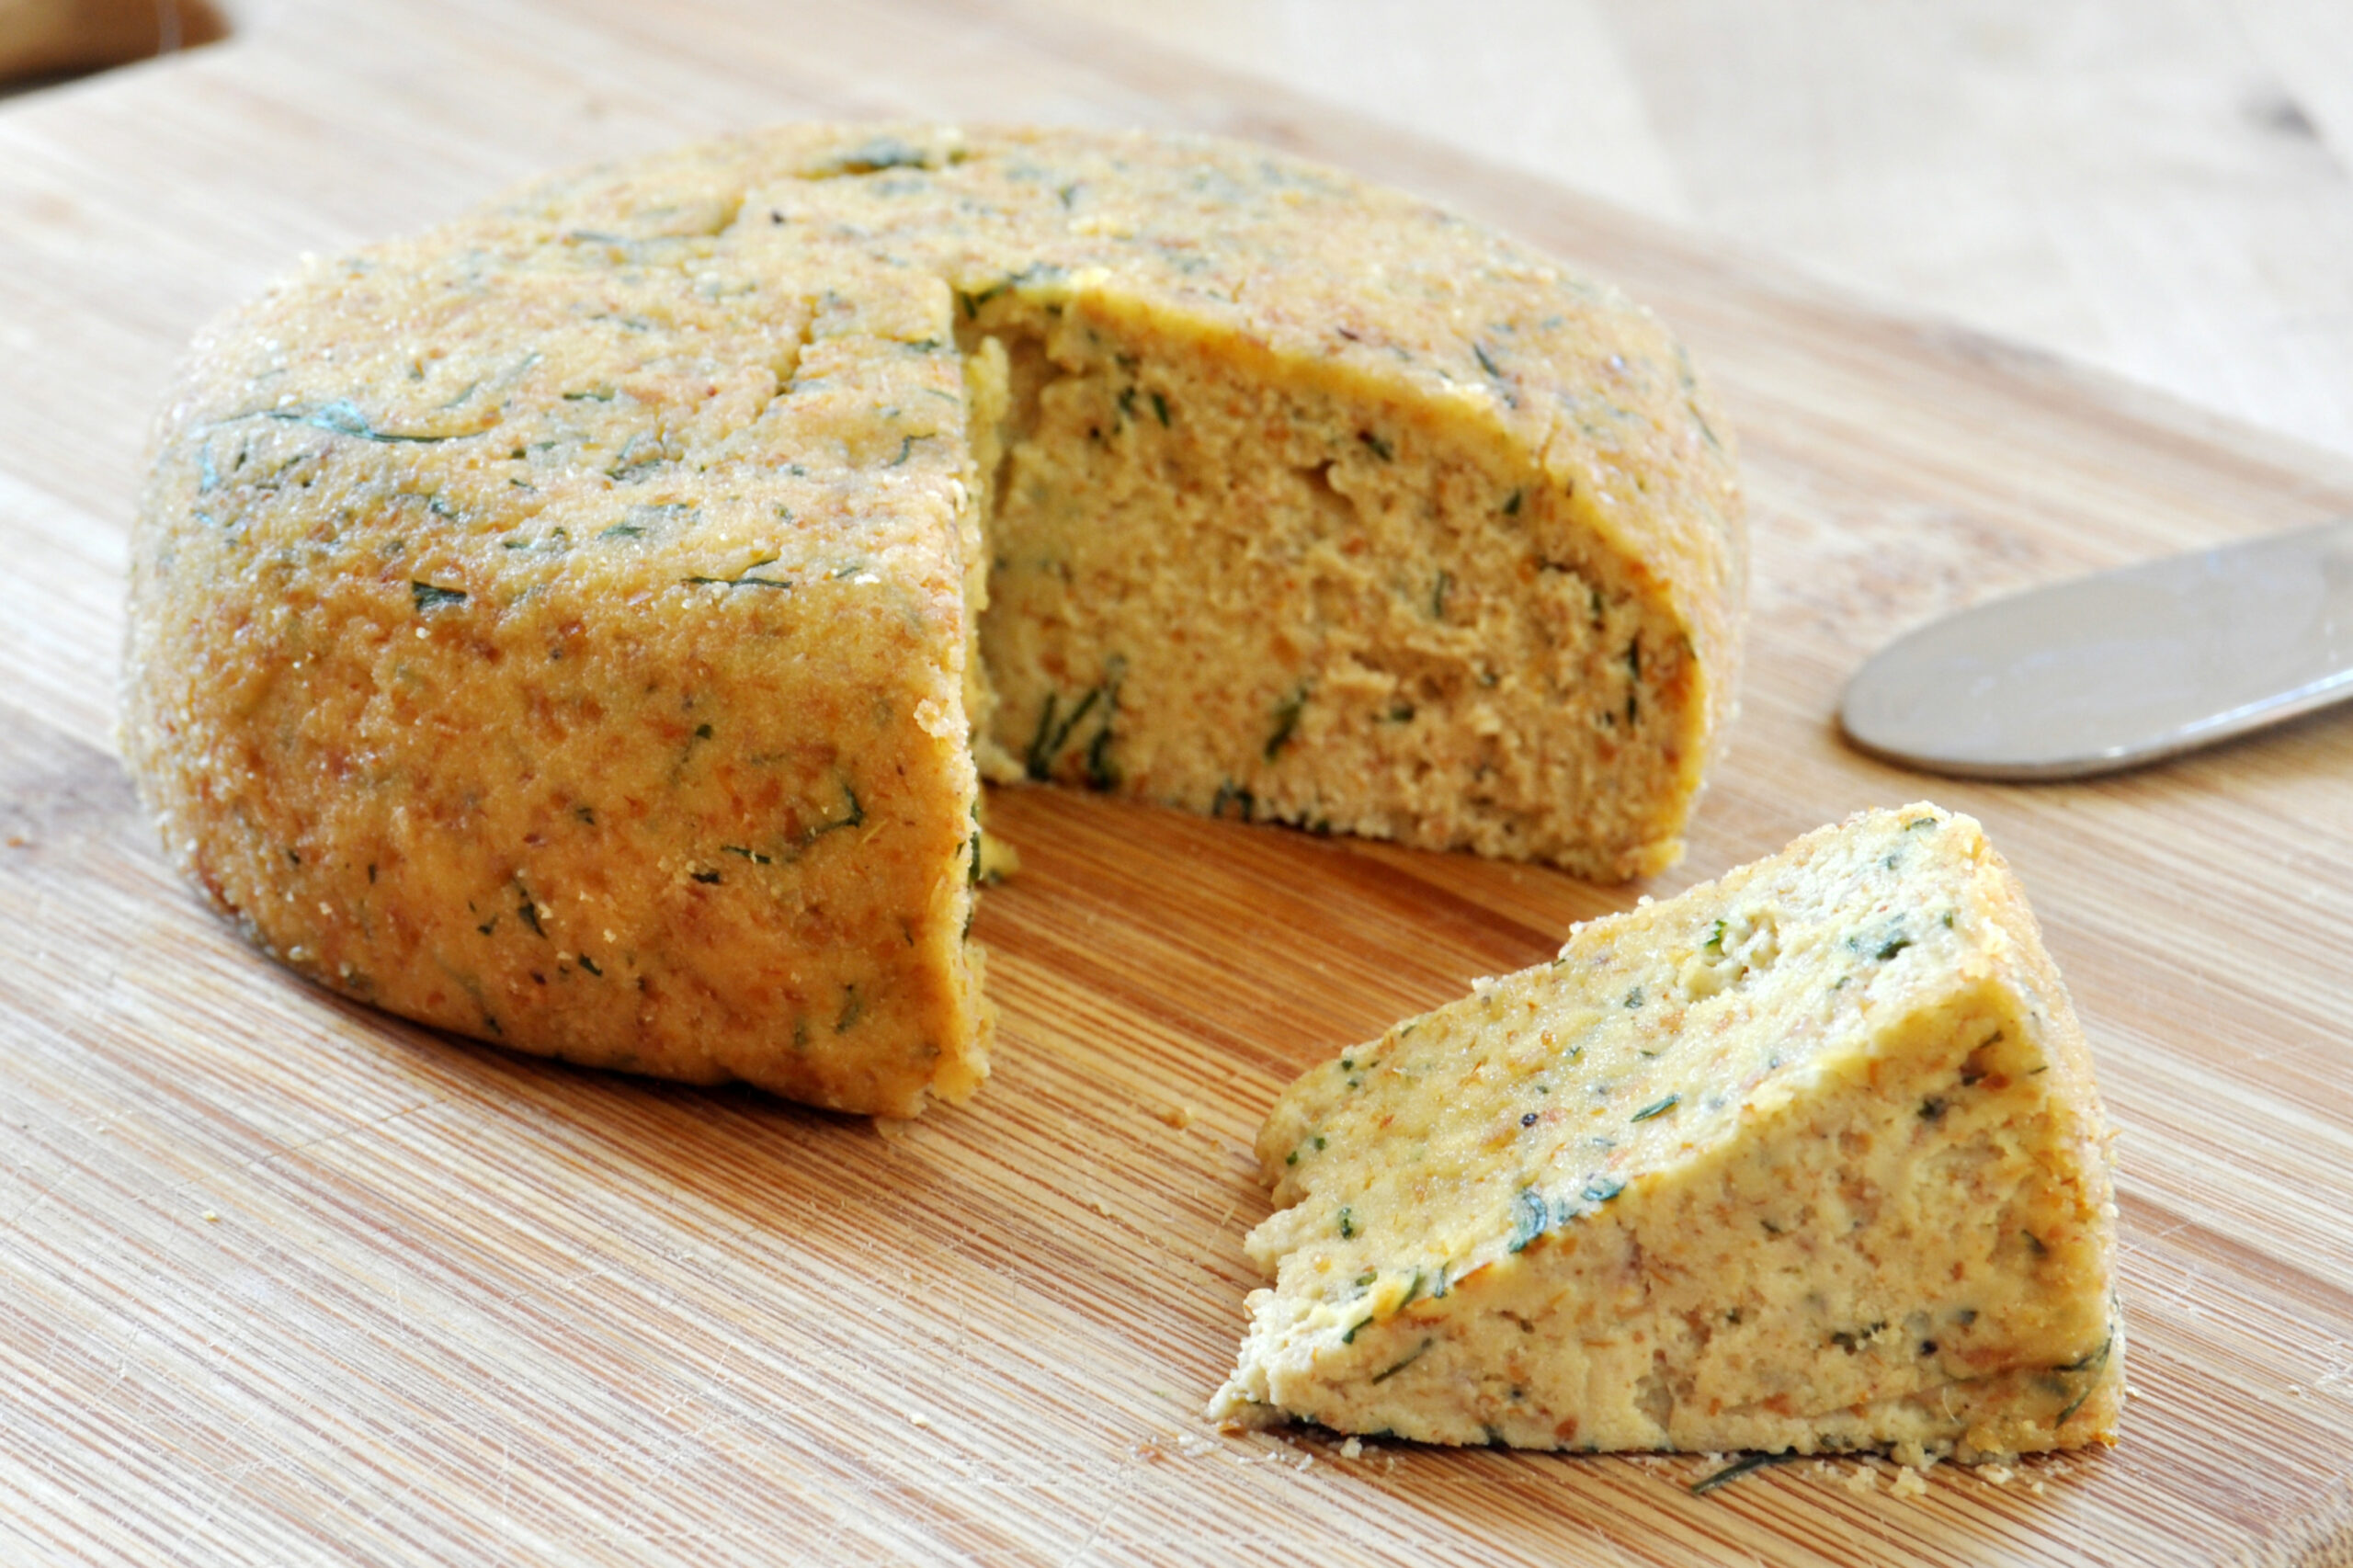 Vegan Almond Dill Cheese - The Colorful Kitchen - dill recipes vegetarian